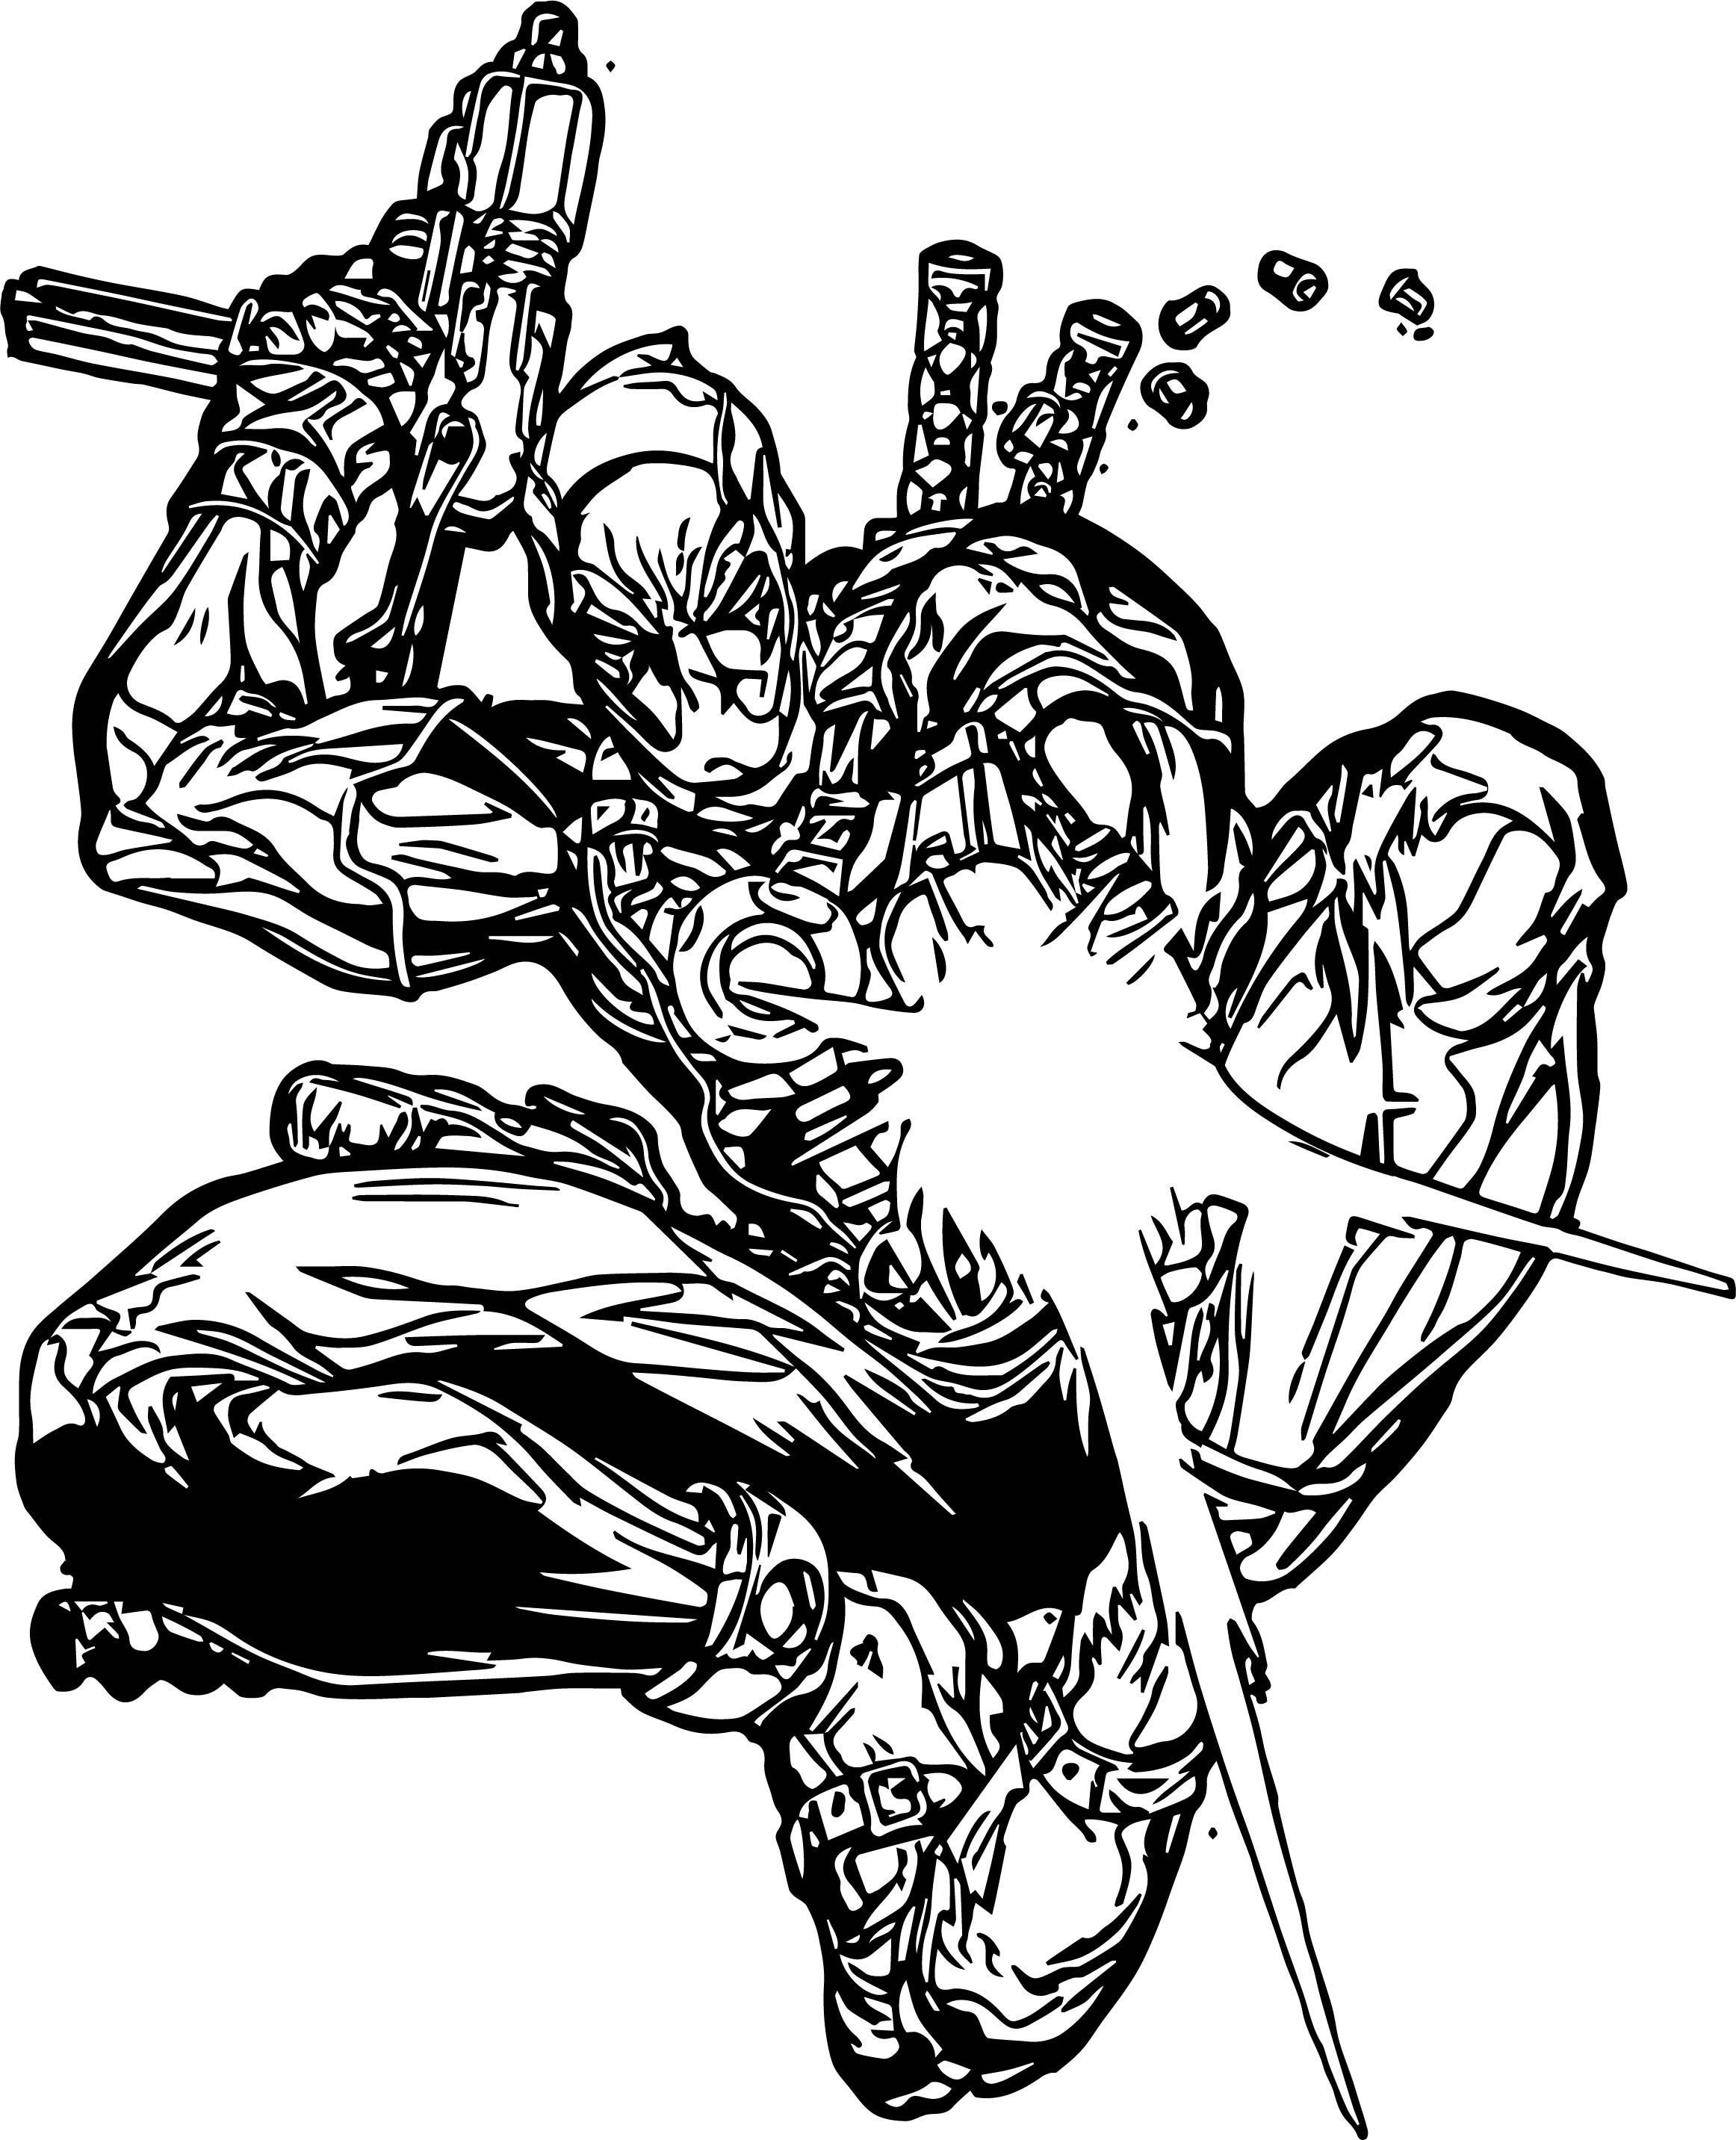 Deadpool Coloring Pages: Deadpool Bang Coloring Page